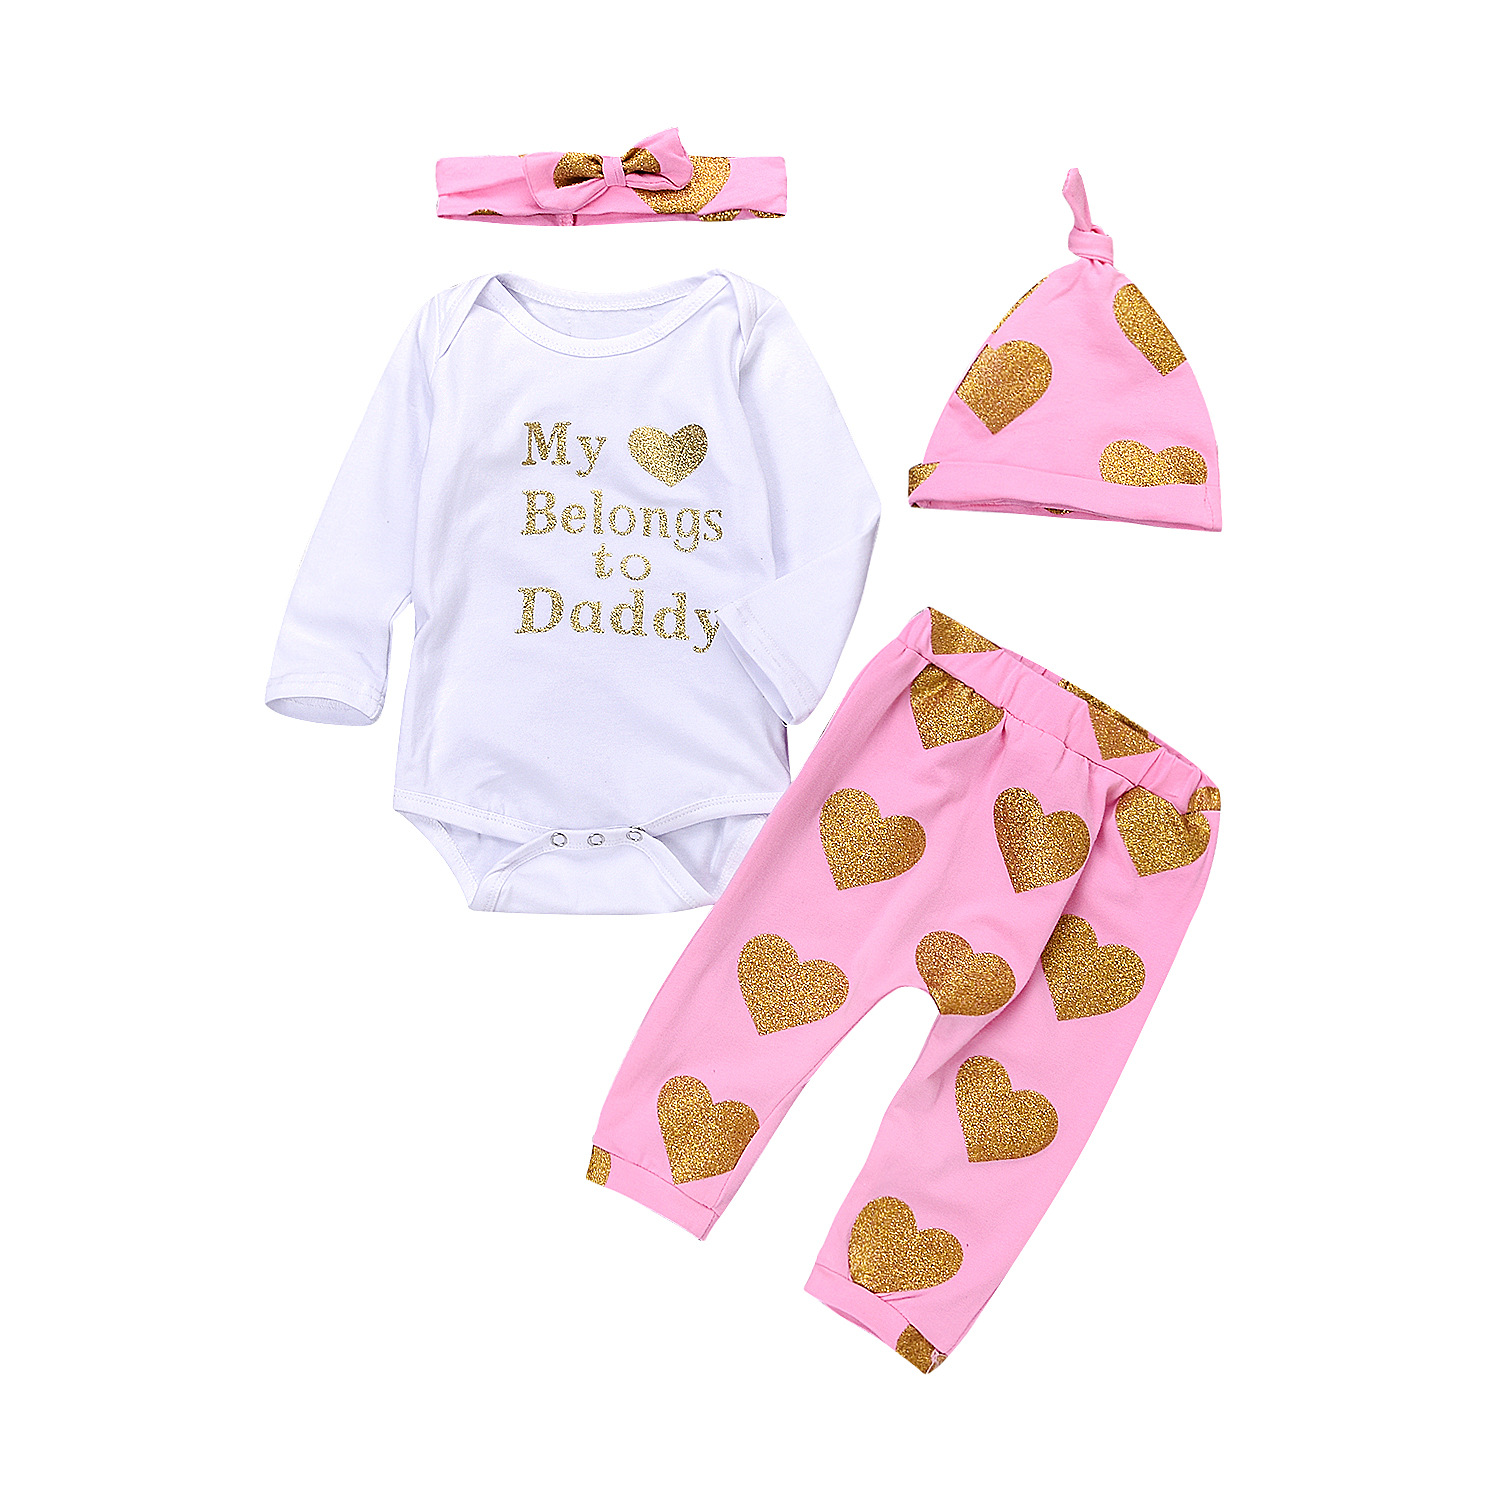 4PCS Pink Infant Set Newborn Baby Girls Outfits White Heart Sequined Long Sleeve Romper  ...